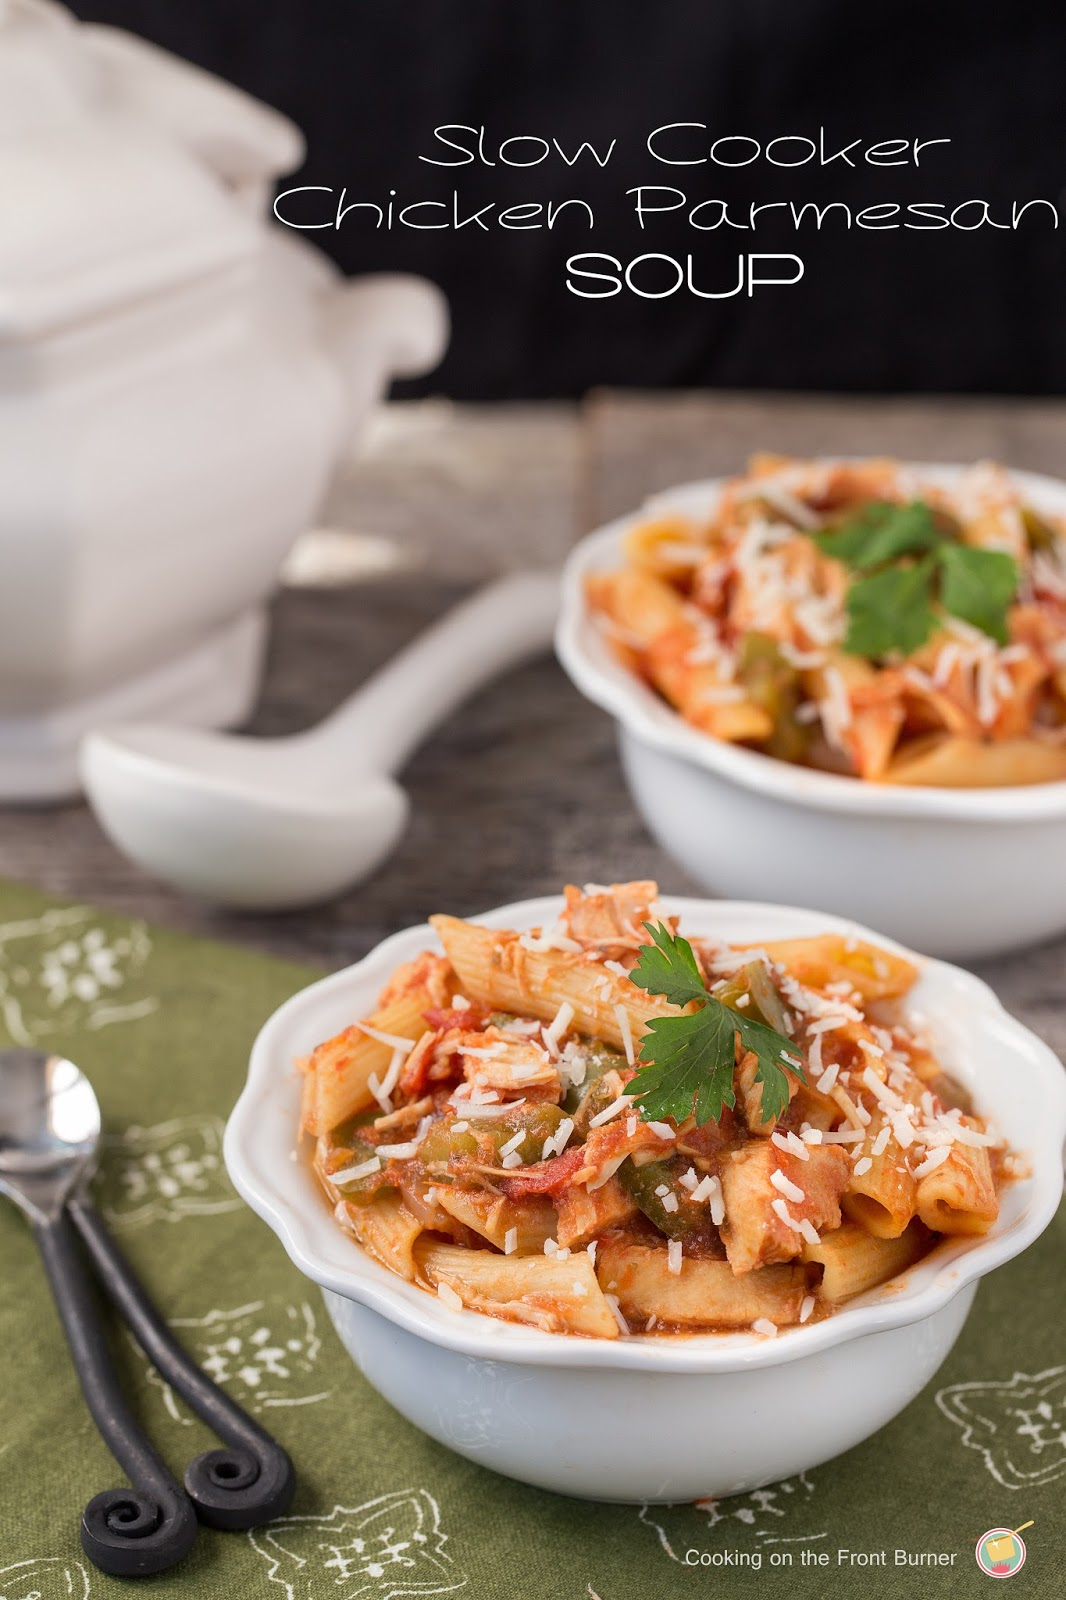 Warm up with this slow cooker Chicken Parmesan soup by Cooking on the Front Burner